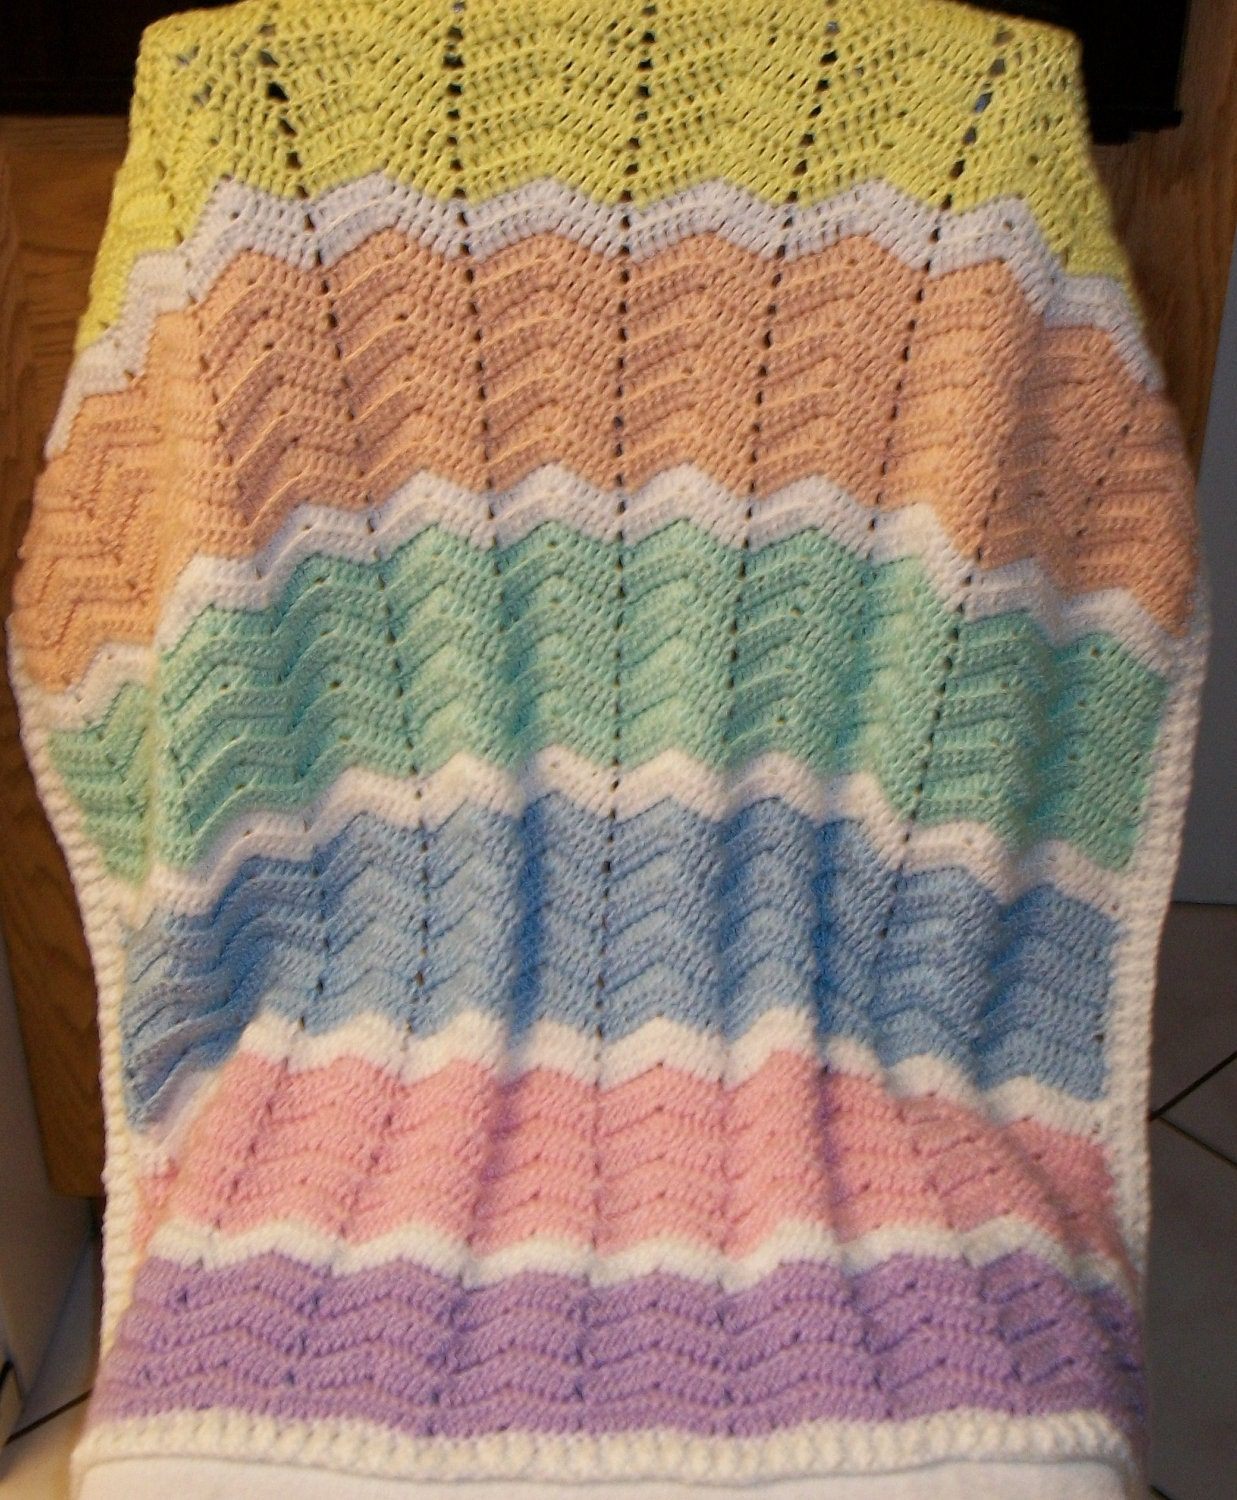 Zig Zag Knitting Pattern Baby Blanket : Crochet patterns zig zag blanket dancox for